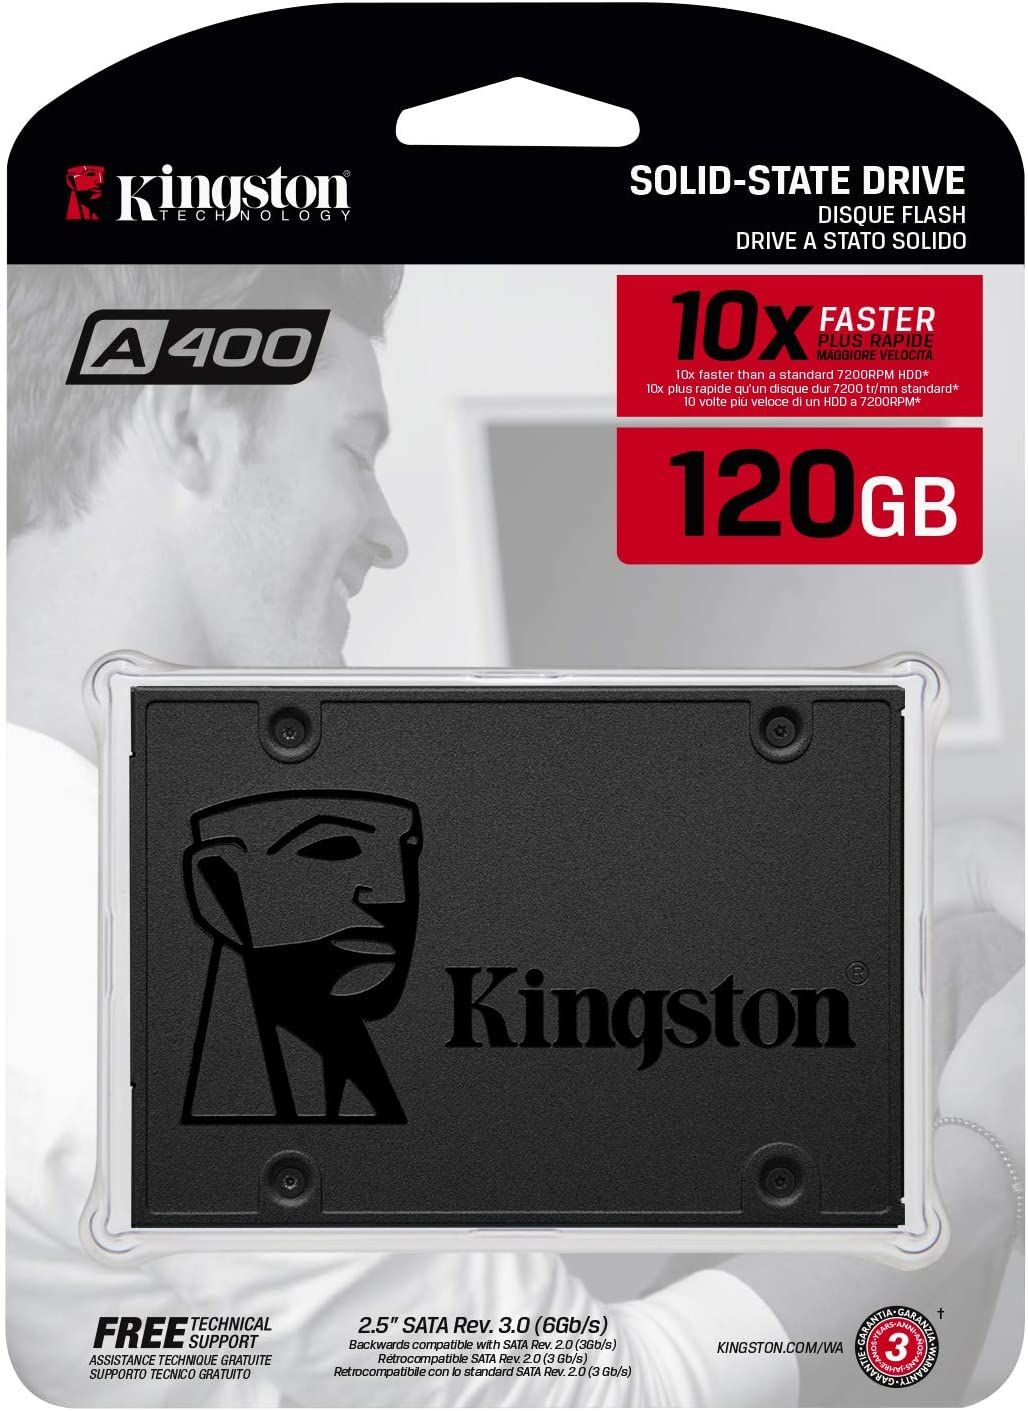 SSD Kingston A400 120 GB